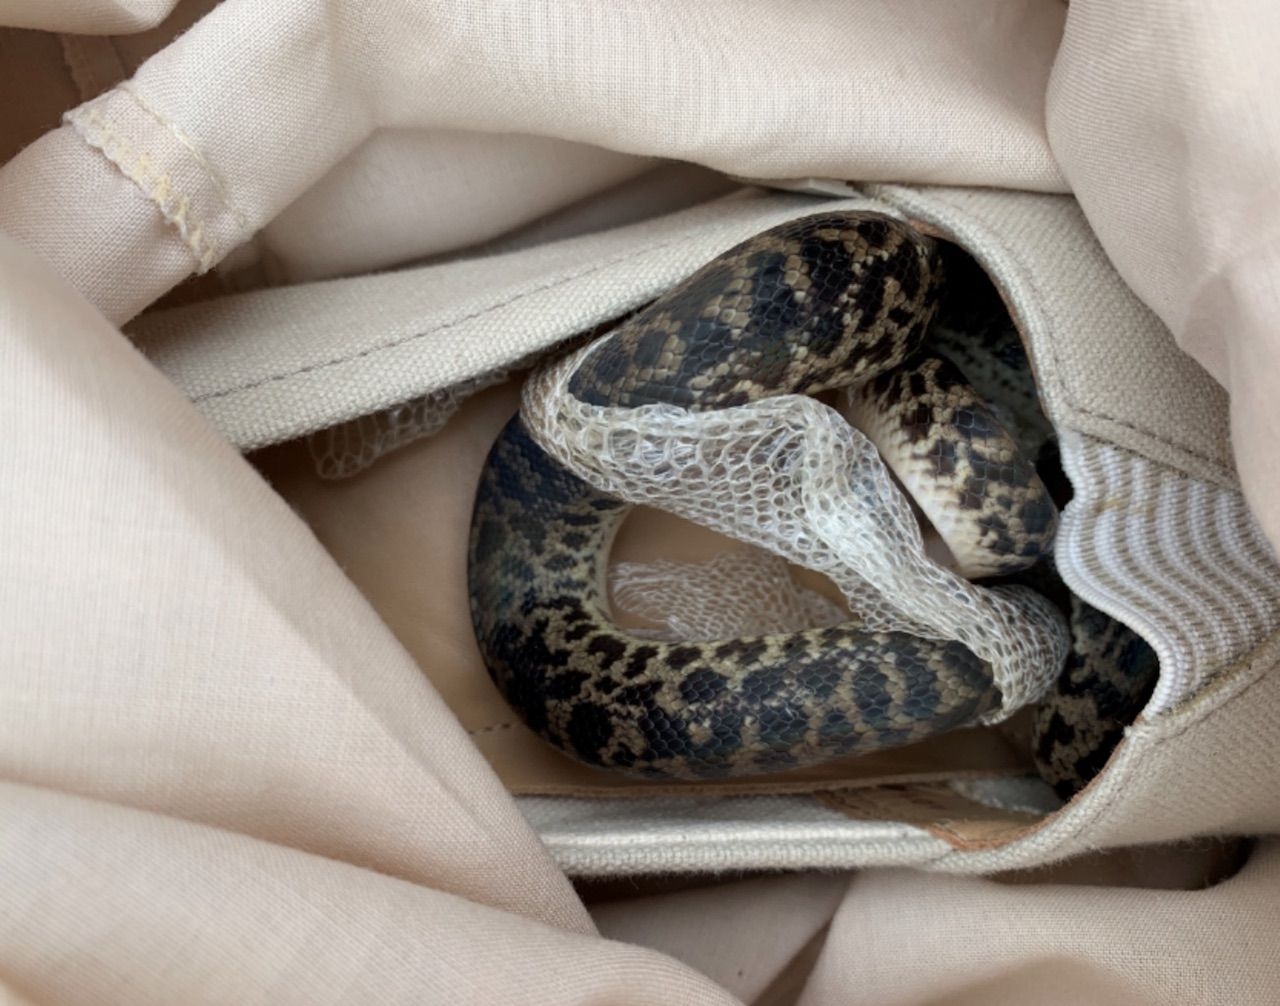 Python hid in woman's plane luggage